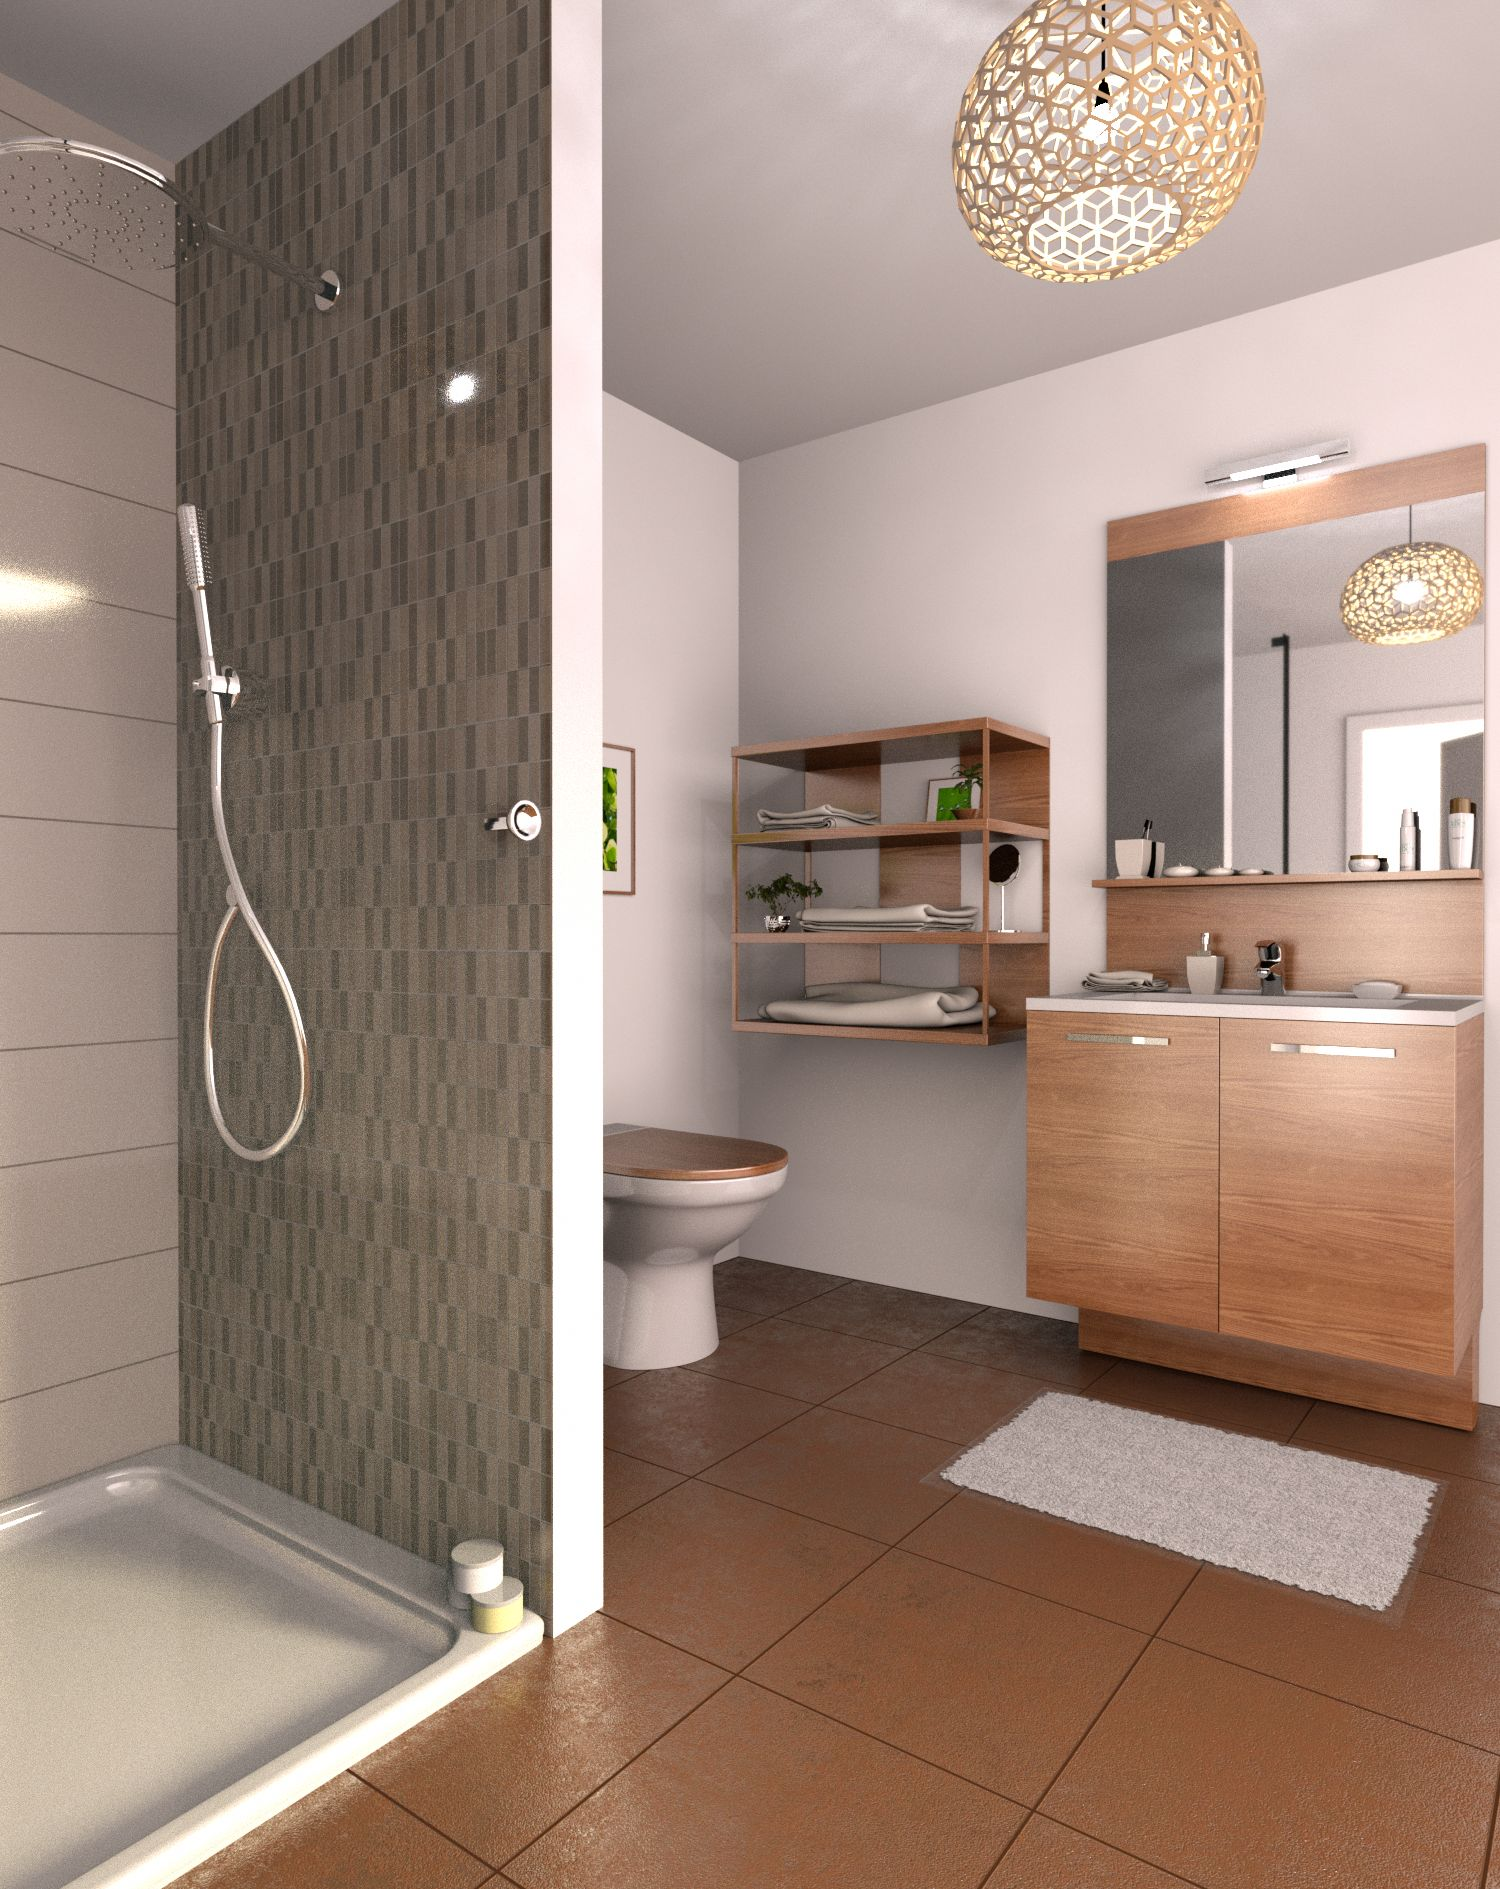 Creation Et Amenagement De Salle De Bain En 3d Cedar Architect